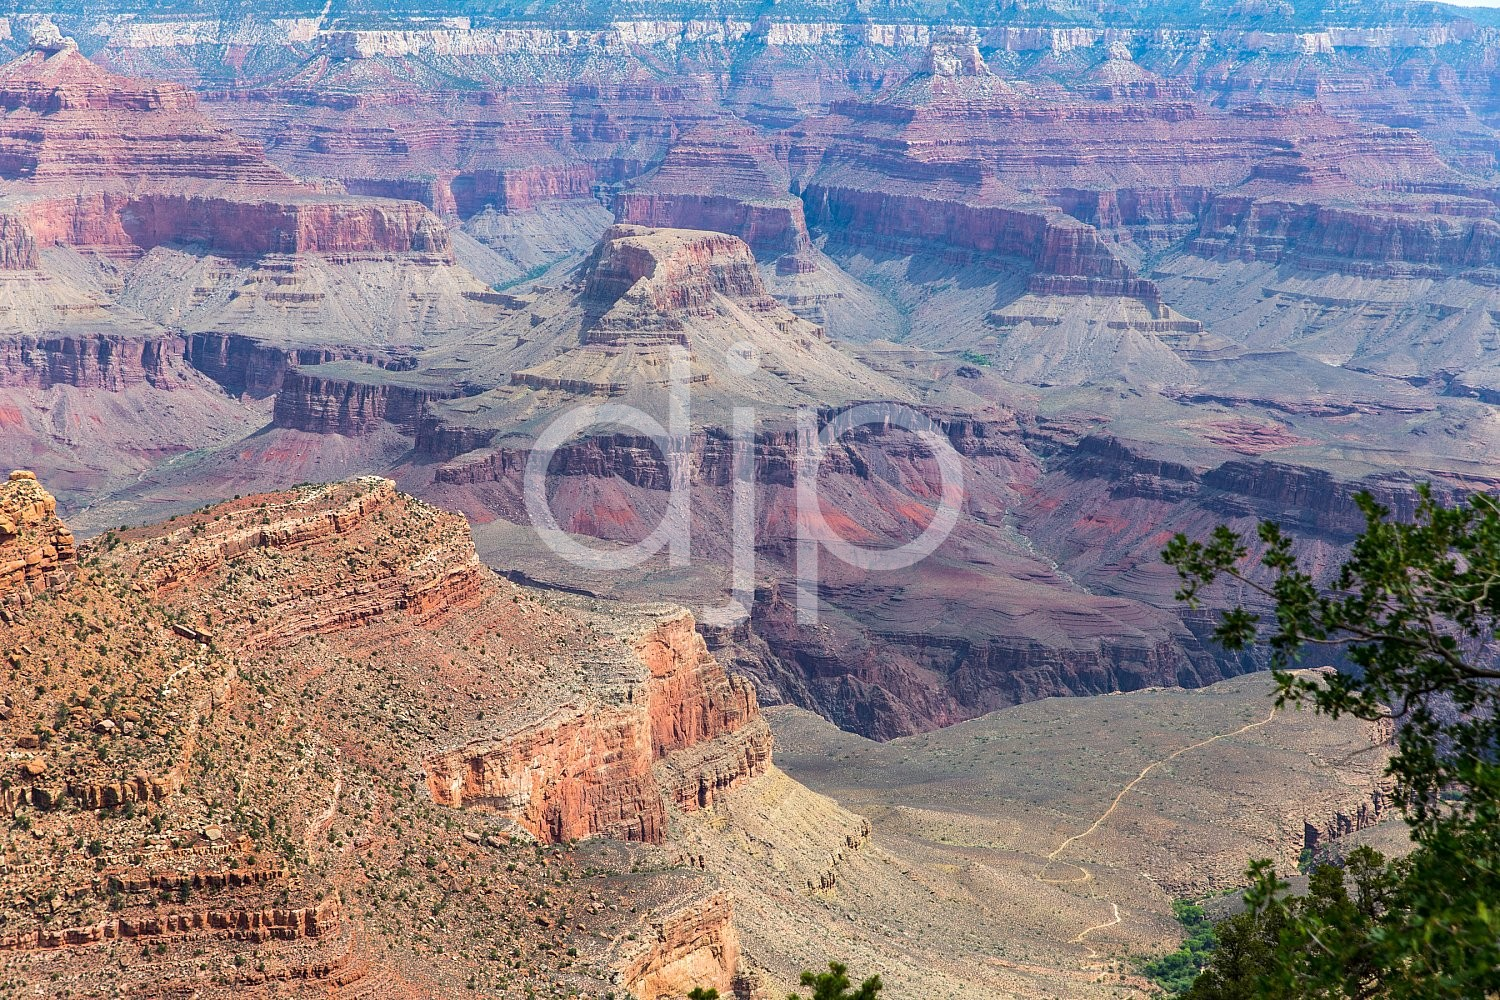 Arizona, Bright Angel Trail, D Jones Photography, Grand Canyon, Hoover Dam, Nevada, Phantom Ranch, South Kaibab Trail, camping, djonesphoto, hiking